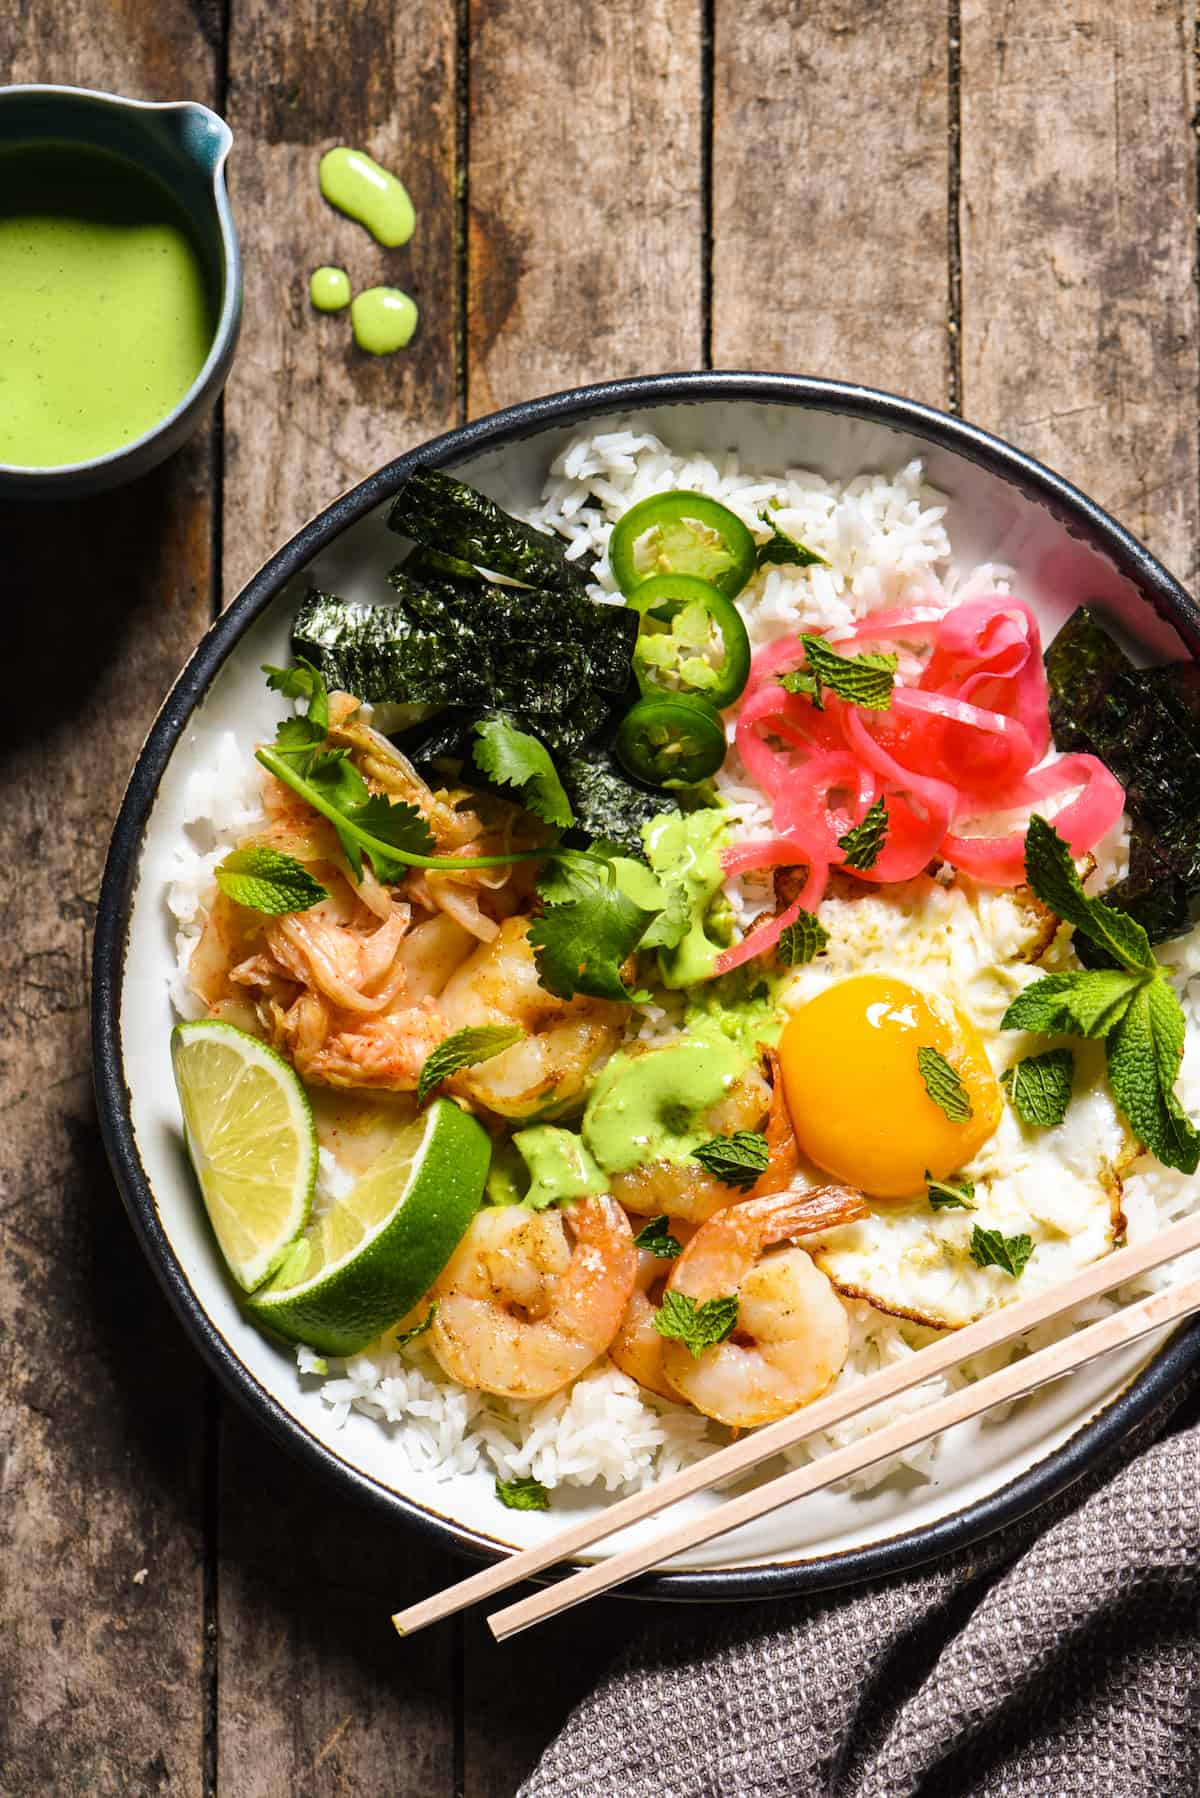 Funky Good Rice & Shrimp Bowls - Shake up your weeknight dinner routine with a rice bowl loaded with shrimp, pickled veggies and a fried egg, and topped with an easy homemade green chili sauce.   foxeslovelemons.com